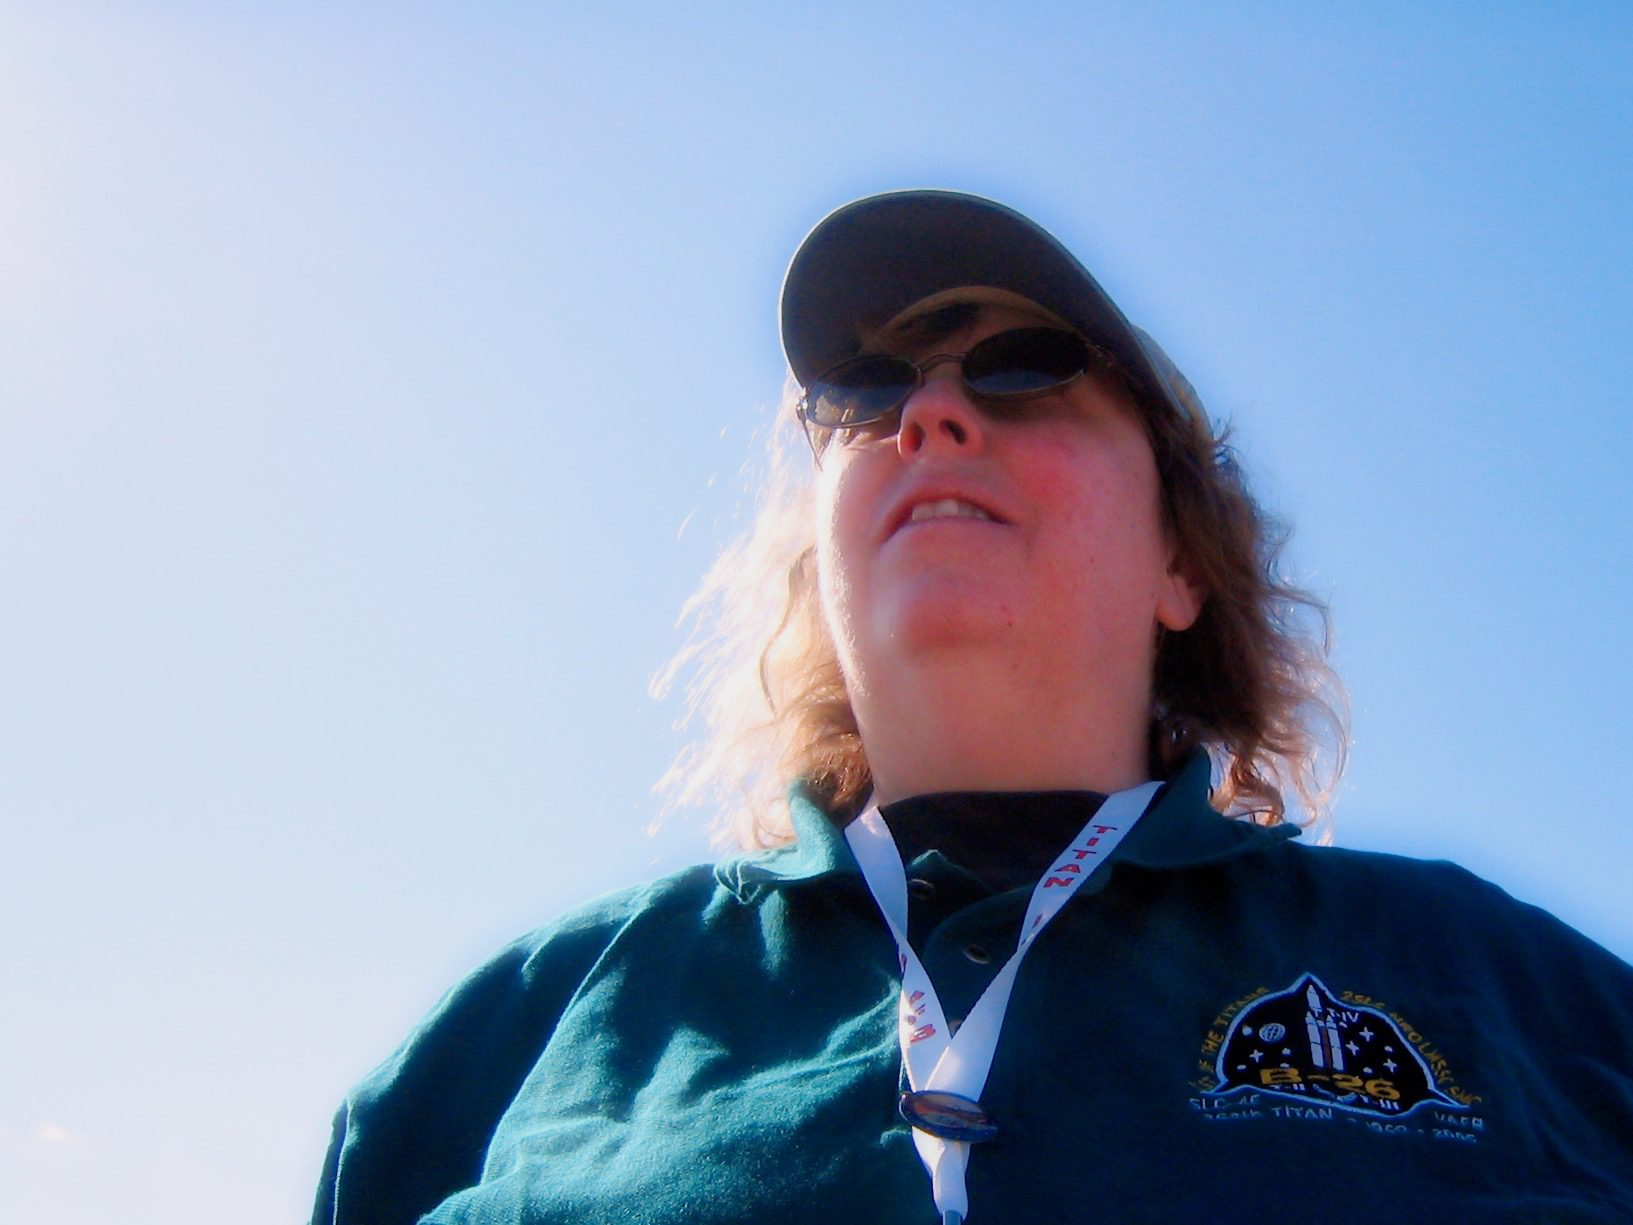 Rocket Scientist Barb Sande, at the Titan B-26 launch on October 19, 2005. Photo by Steve Sande